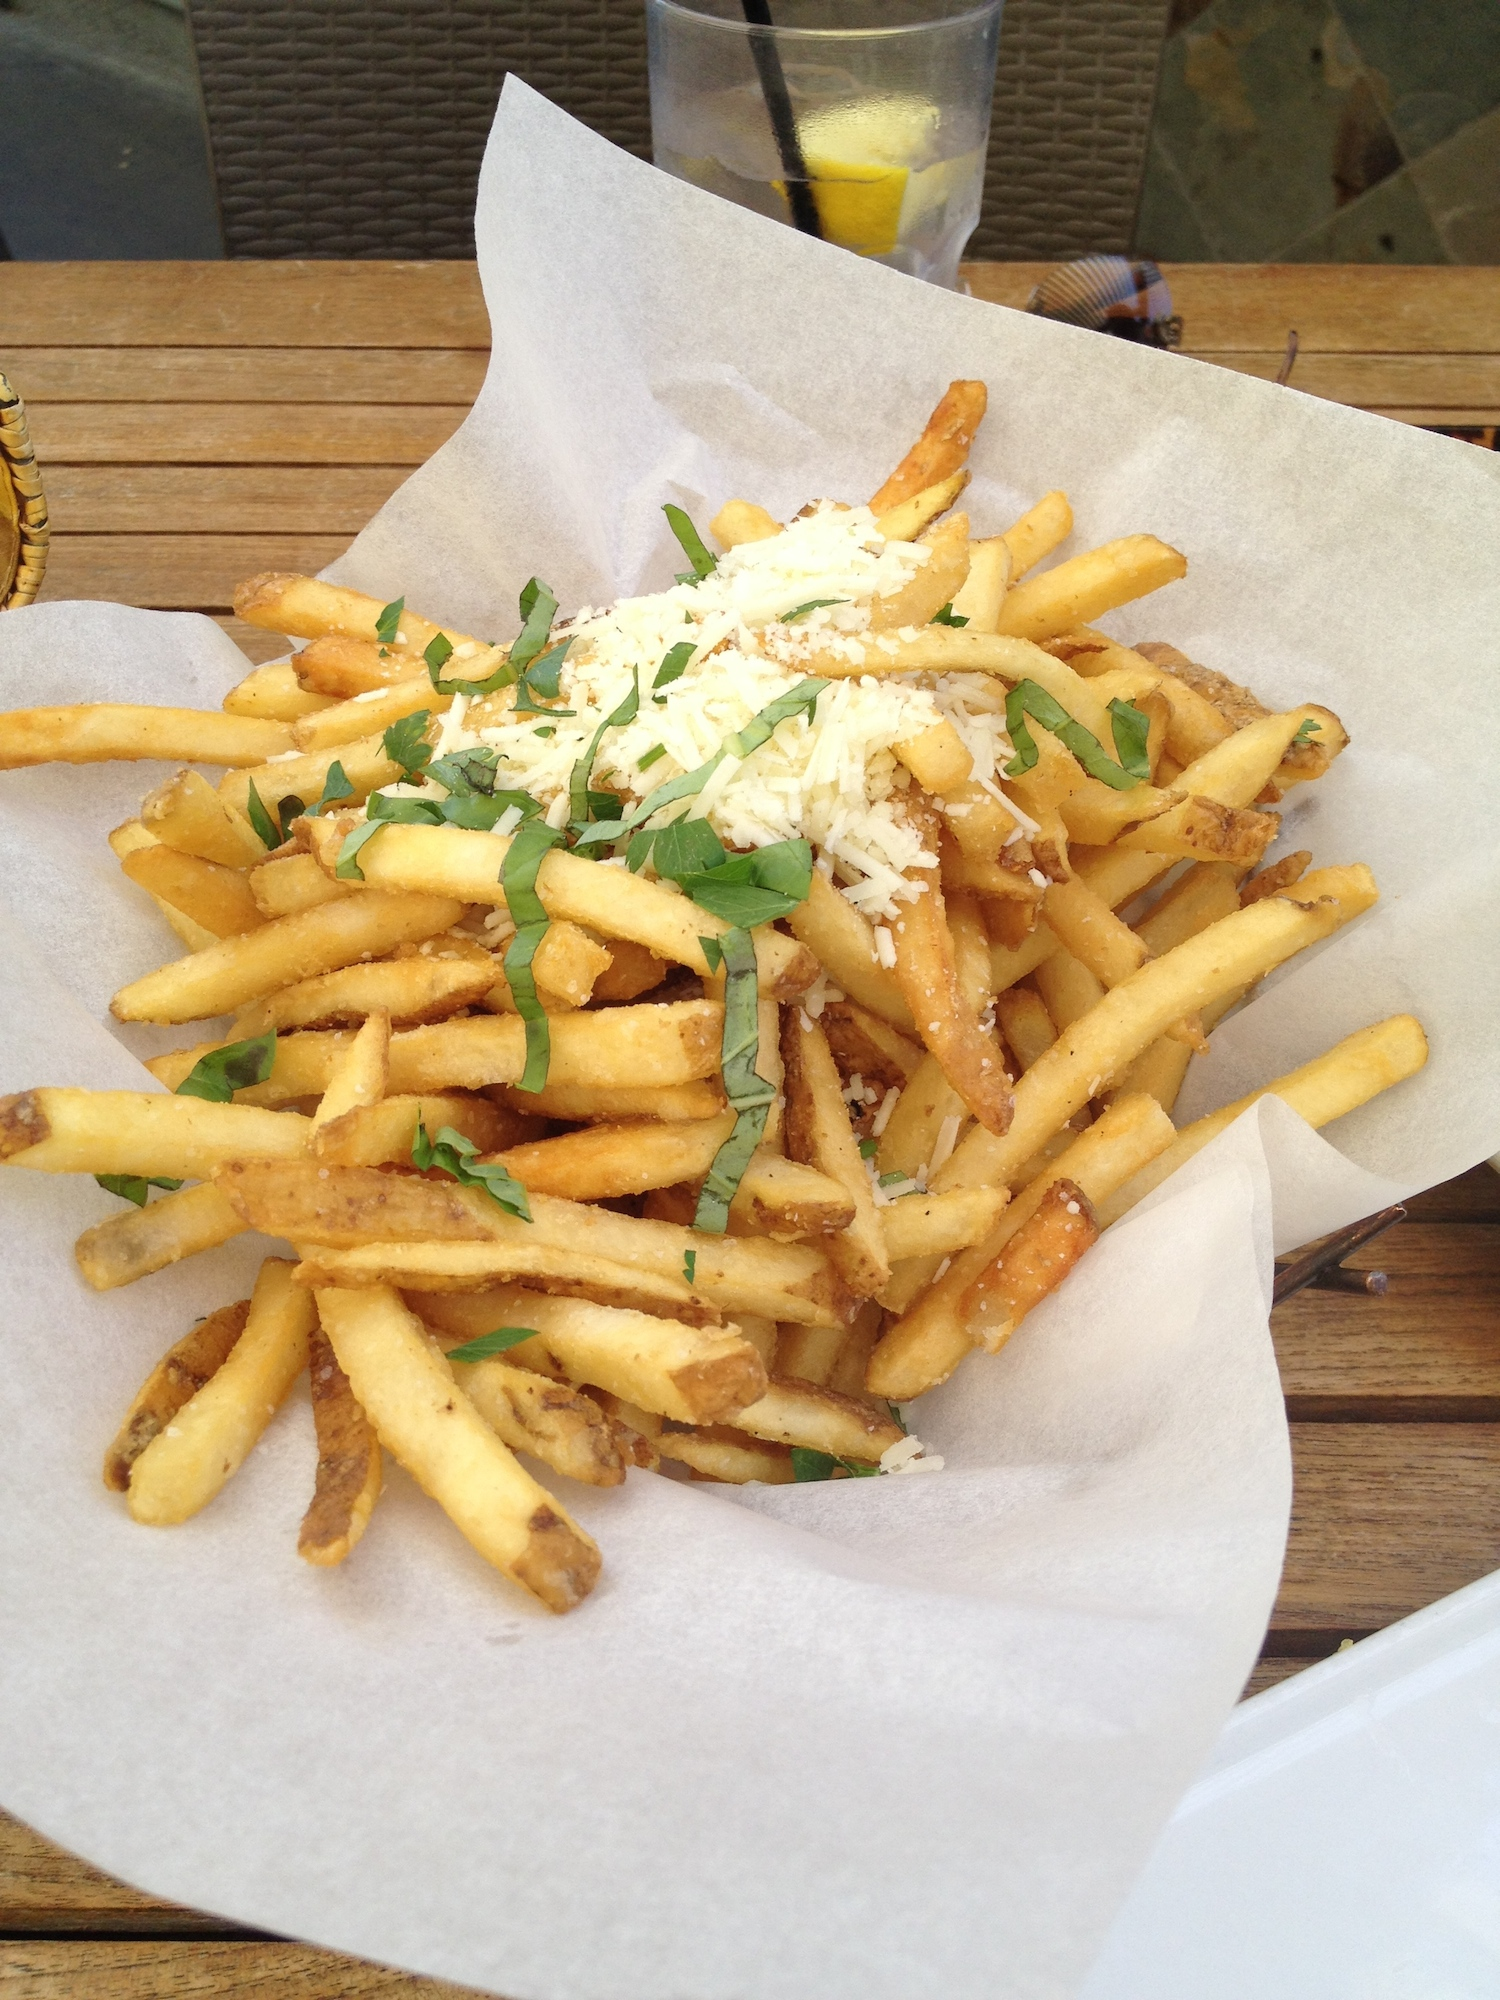 Public House Restaurant, Lemon Truffle Fries